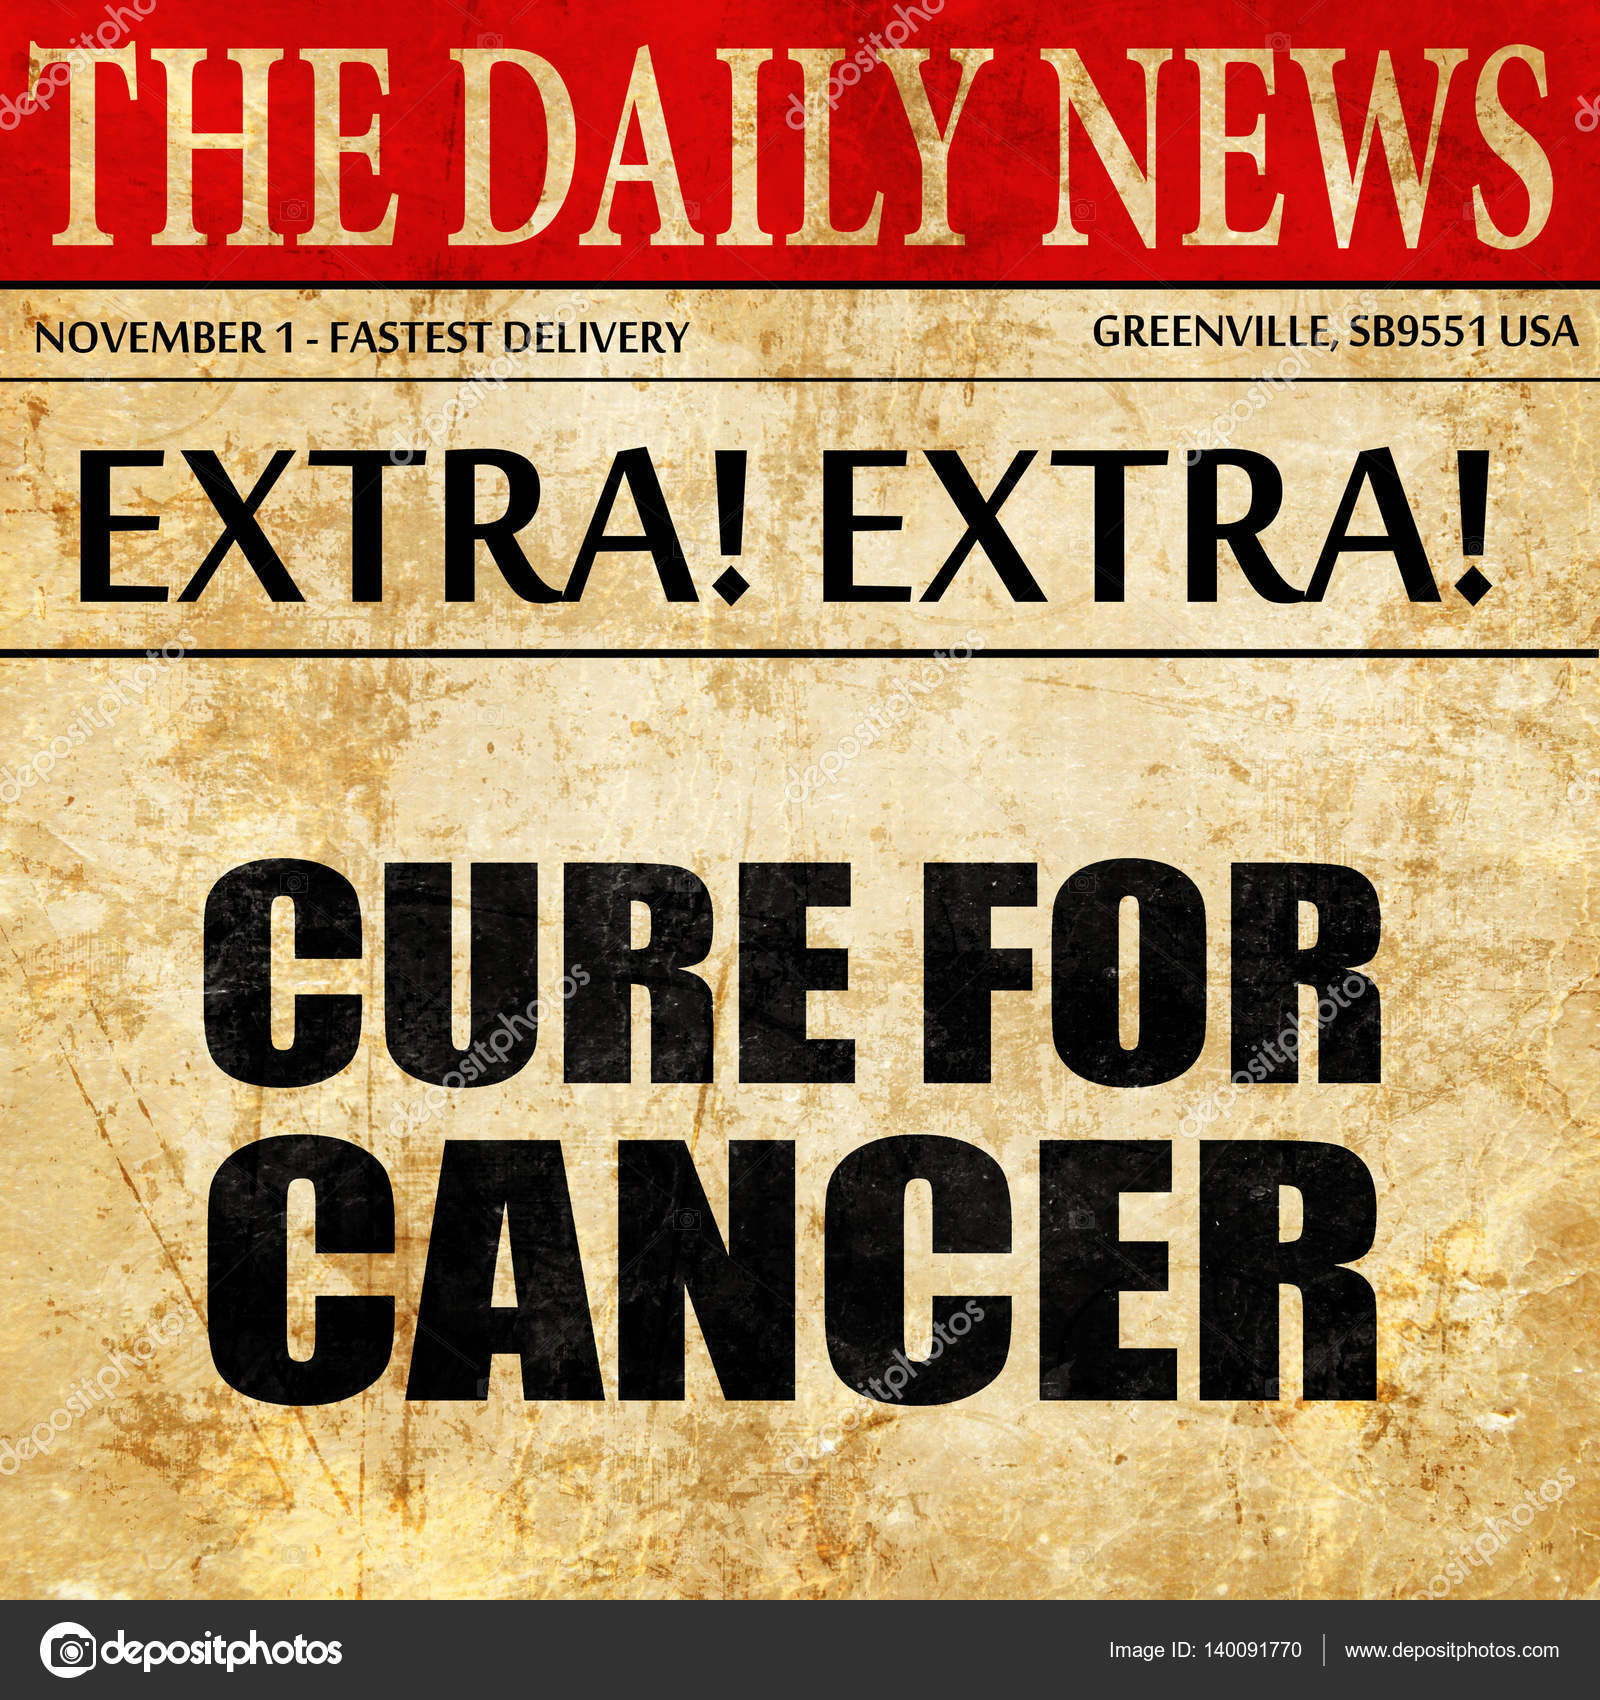 Cure for cancer, newspaper article text — Stock Photo © ellandar